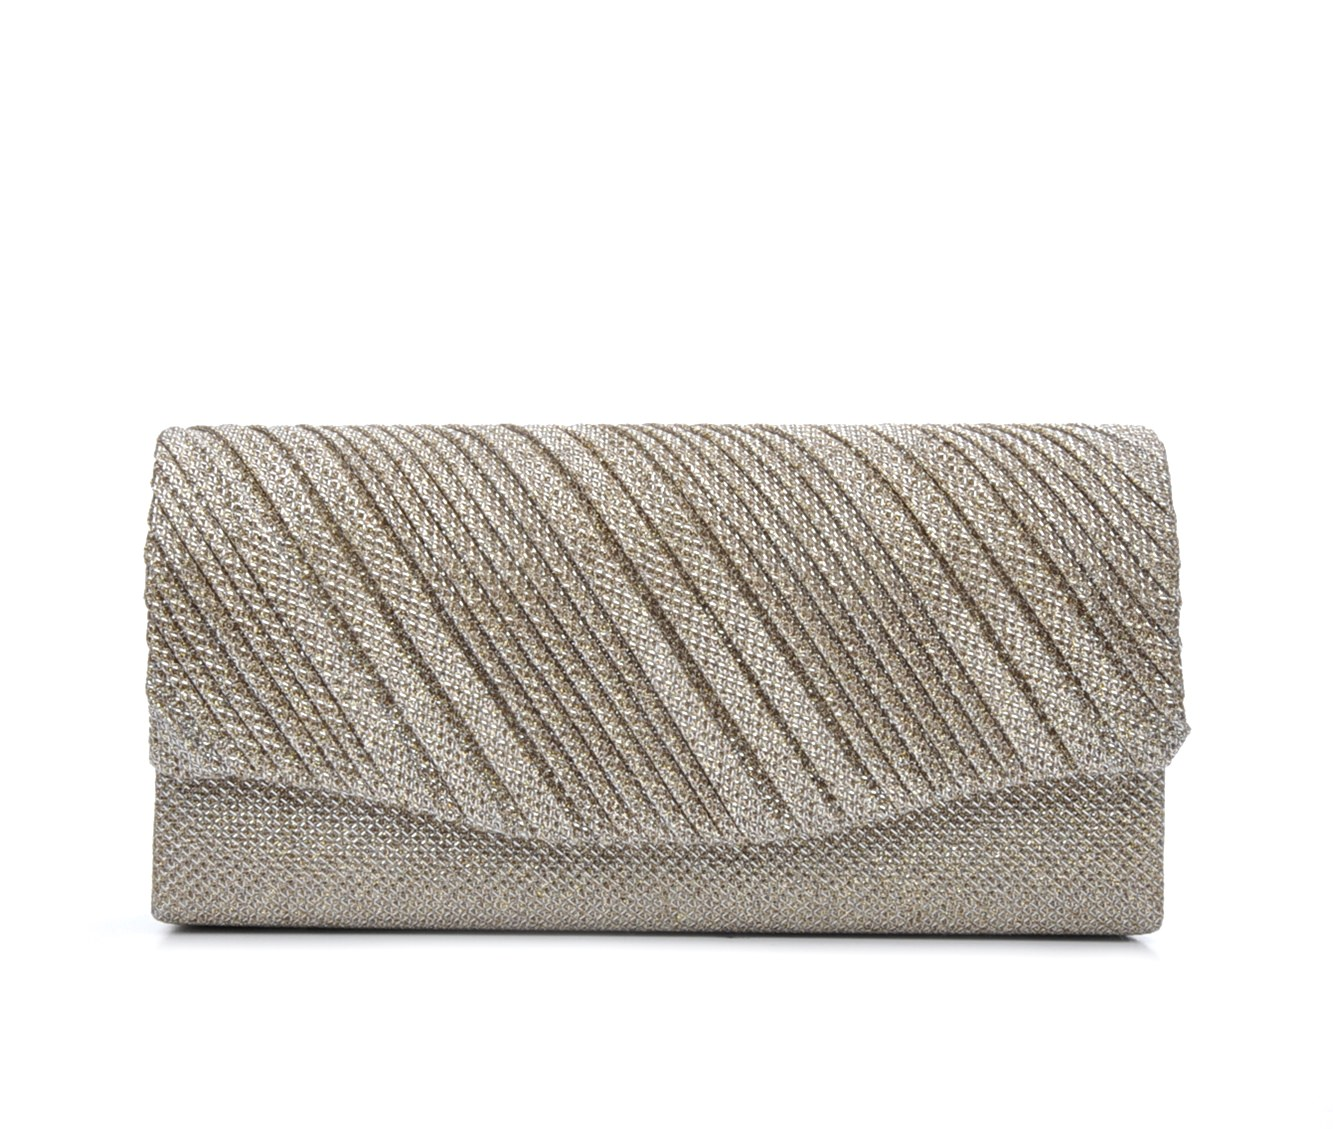 Four Seasons Handbags Small Diagonal Stripe Evening Clutch (Beige)